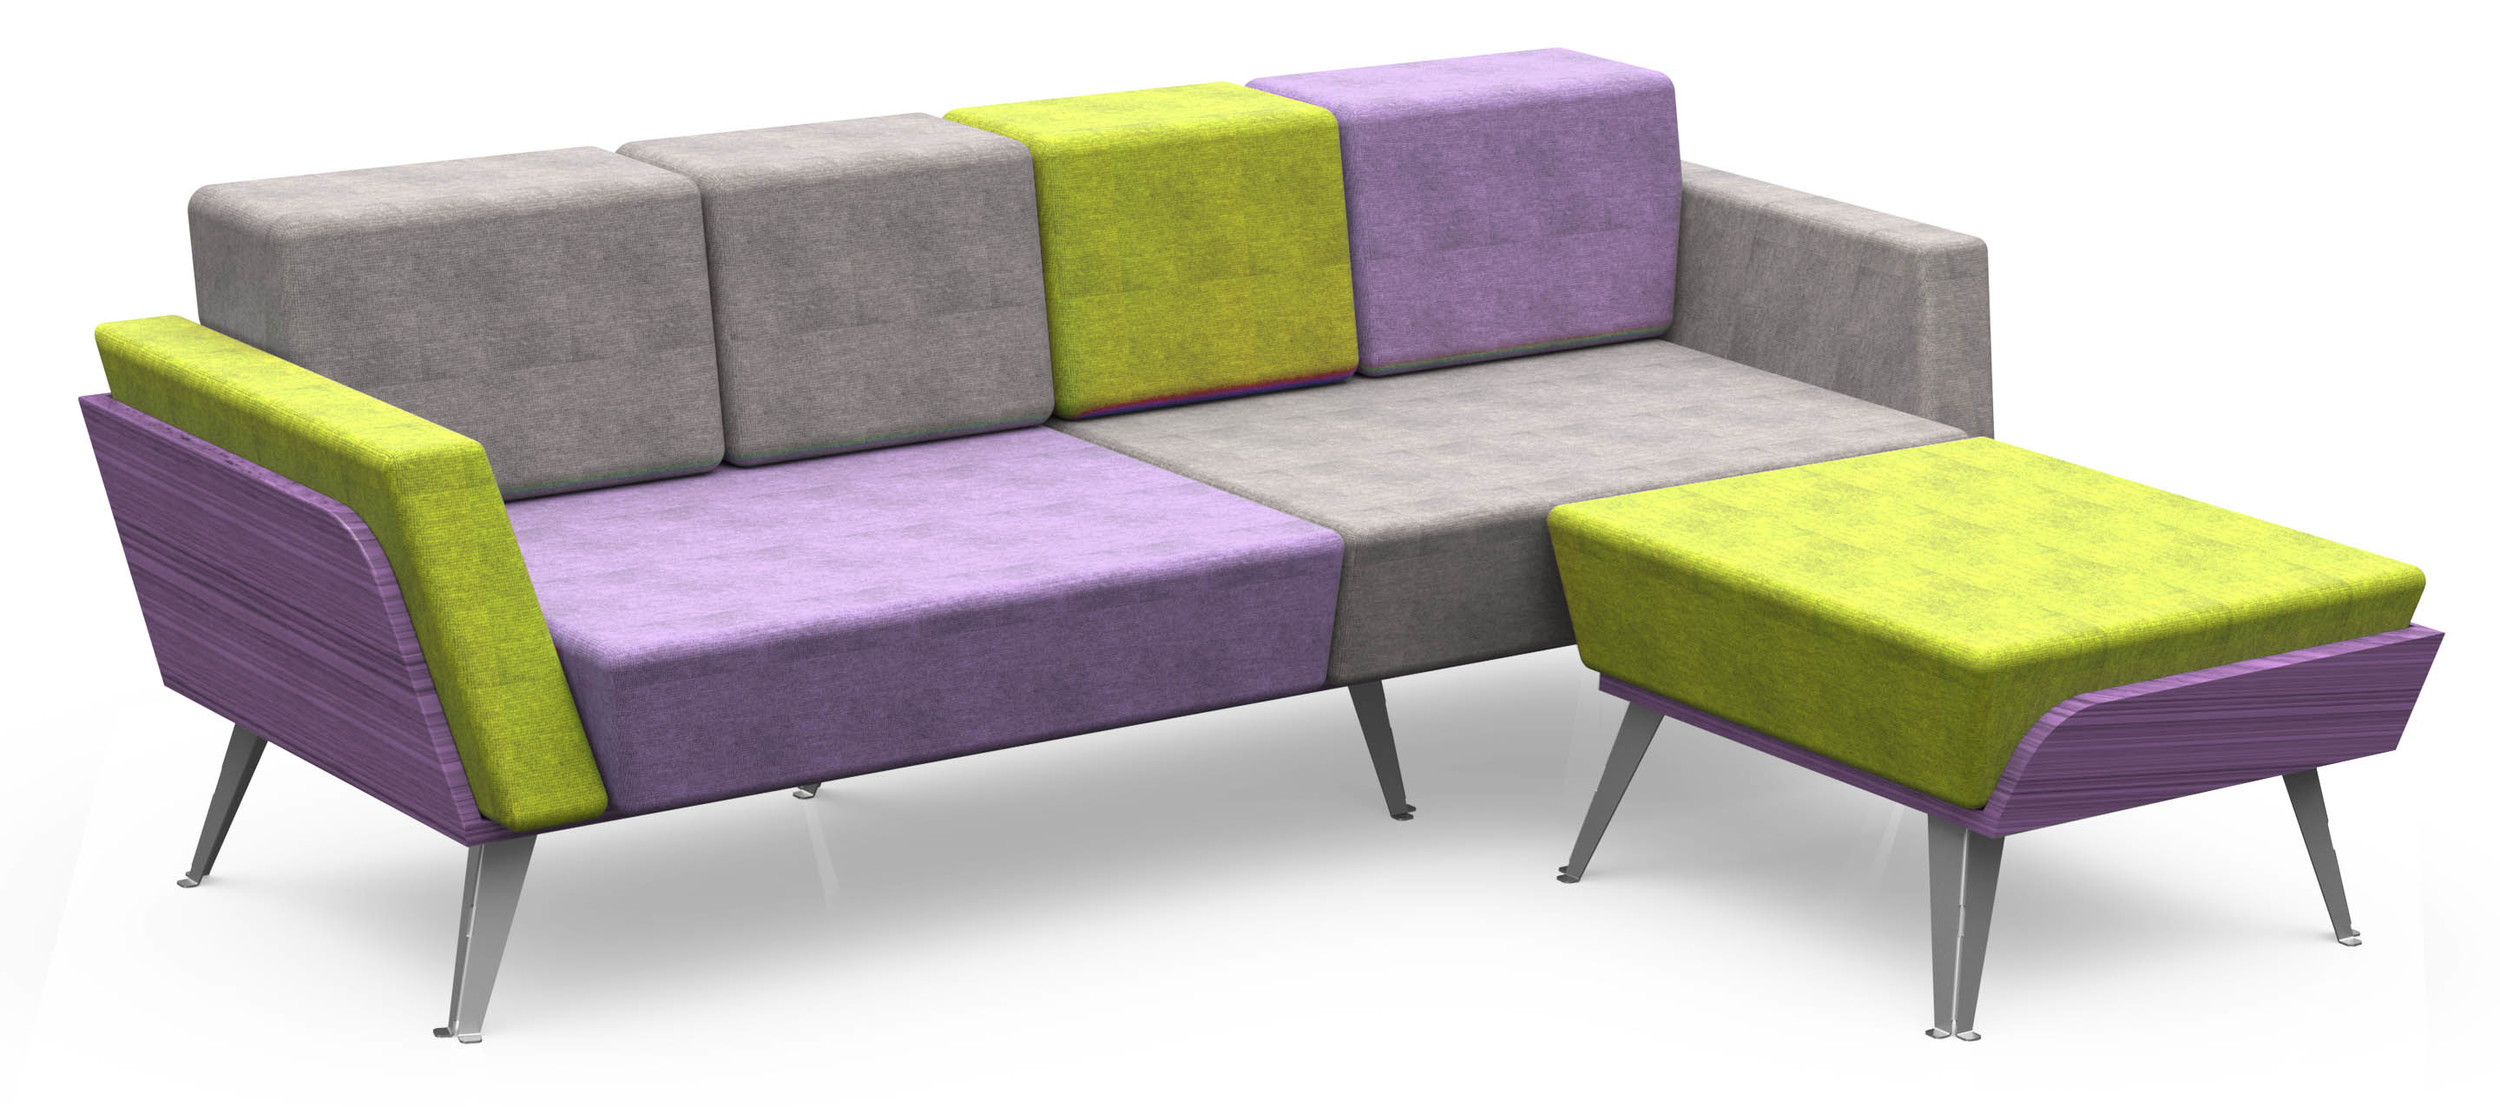 Garnitur_Sofa_Hocker_2880.jpg